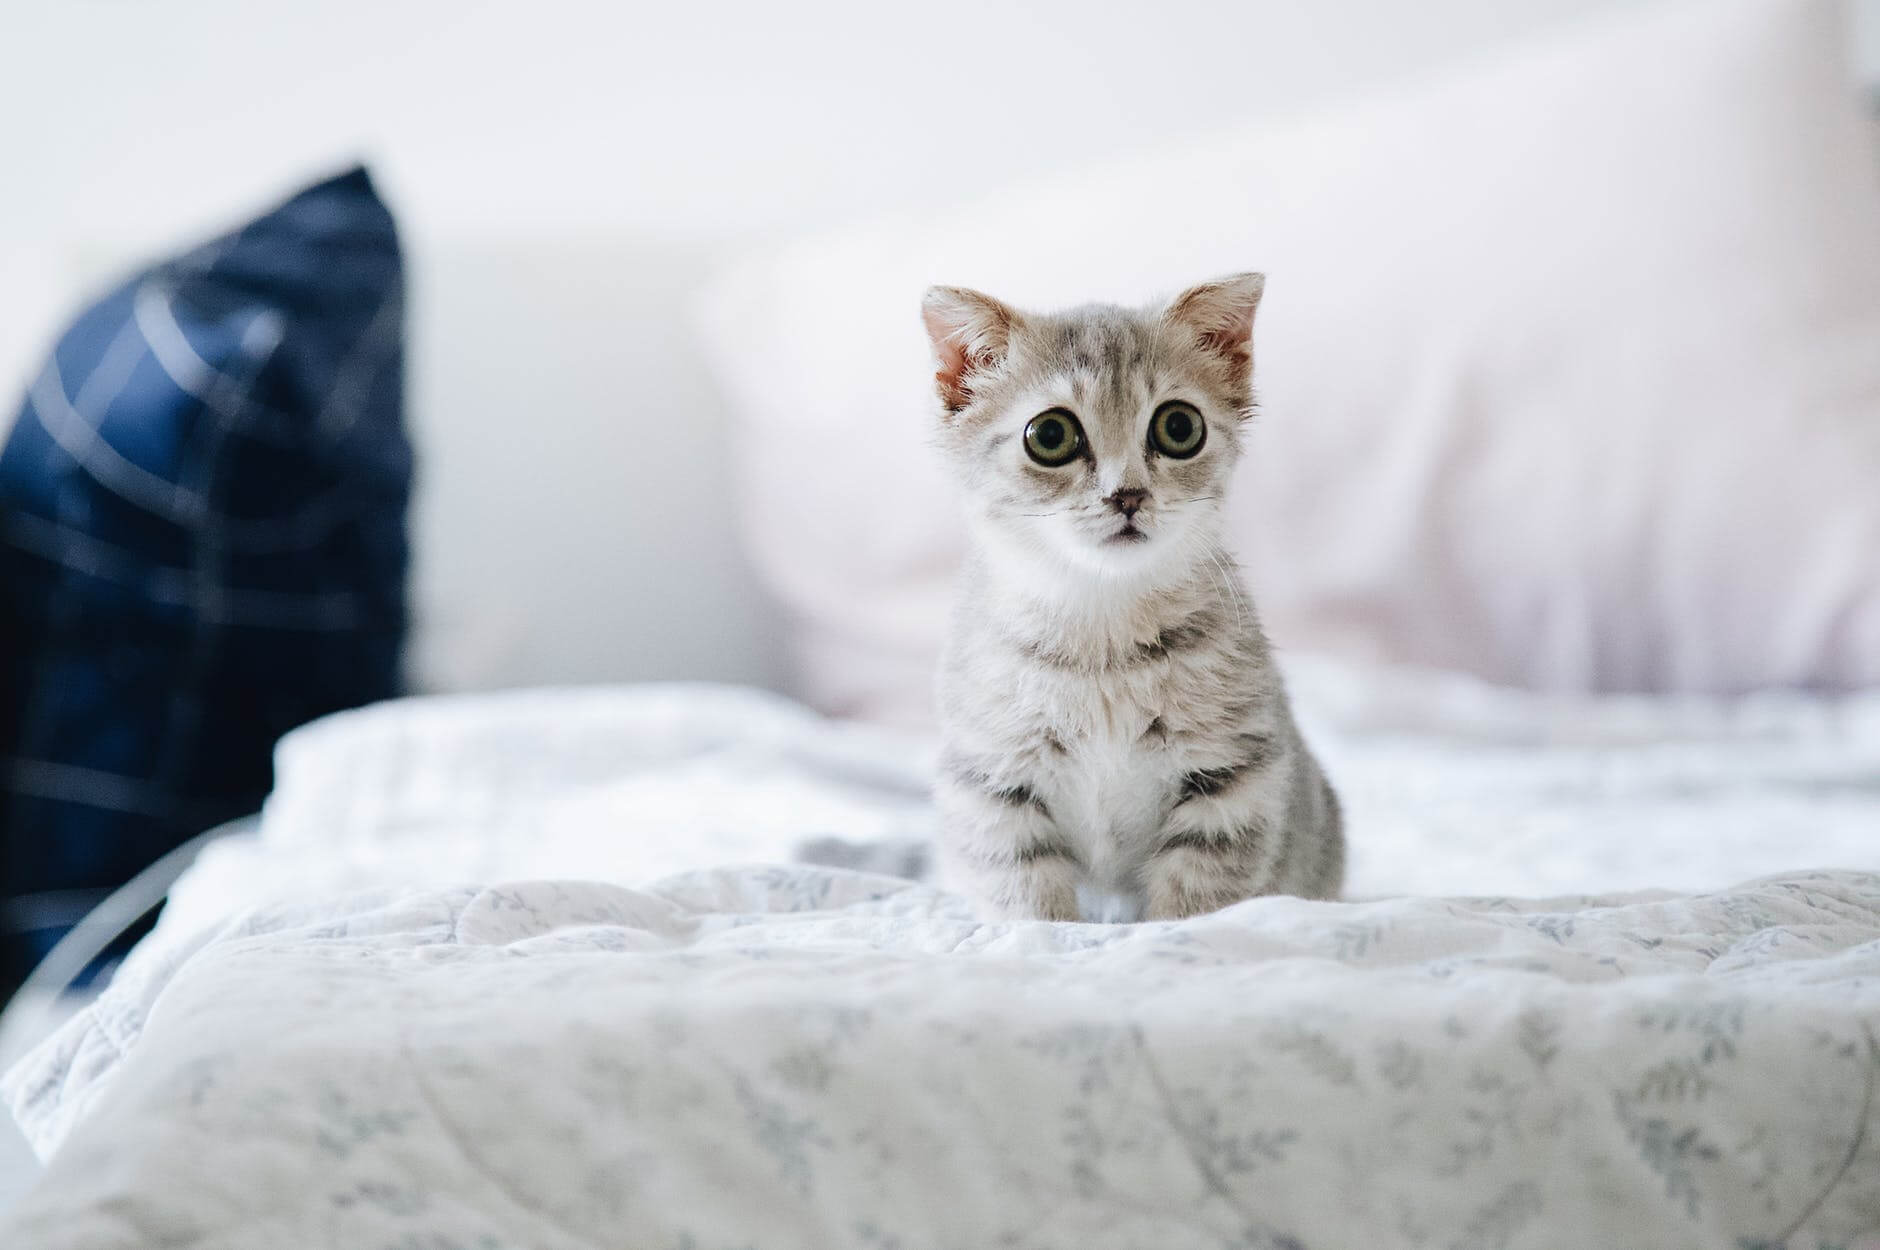 Cute kitten with lovely eyes